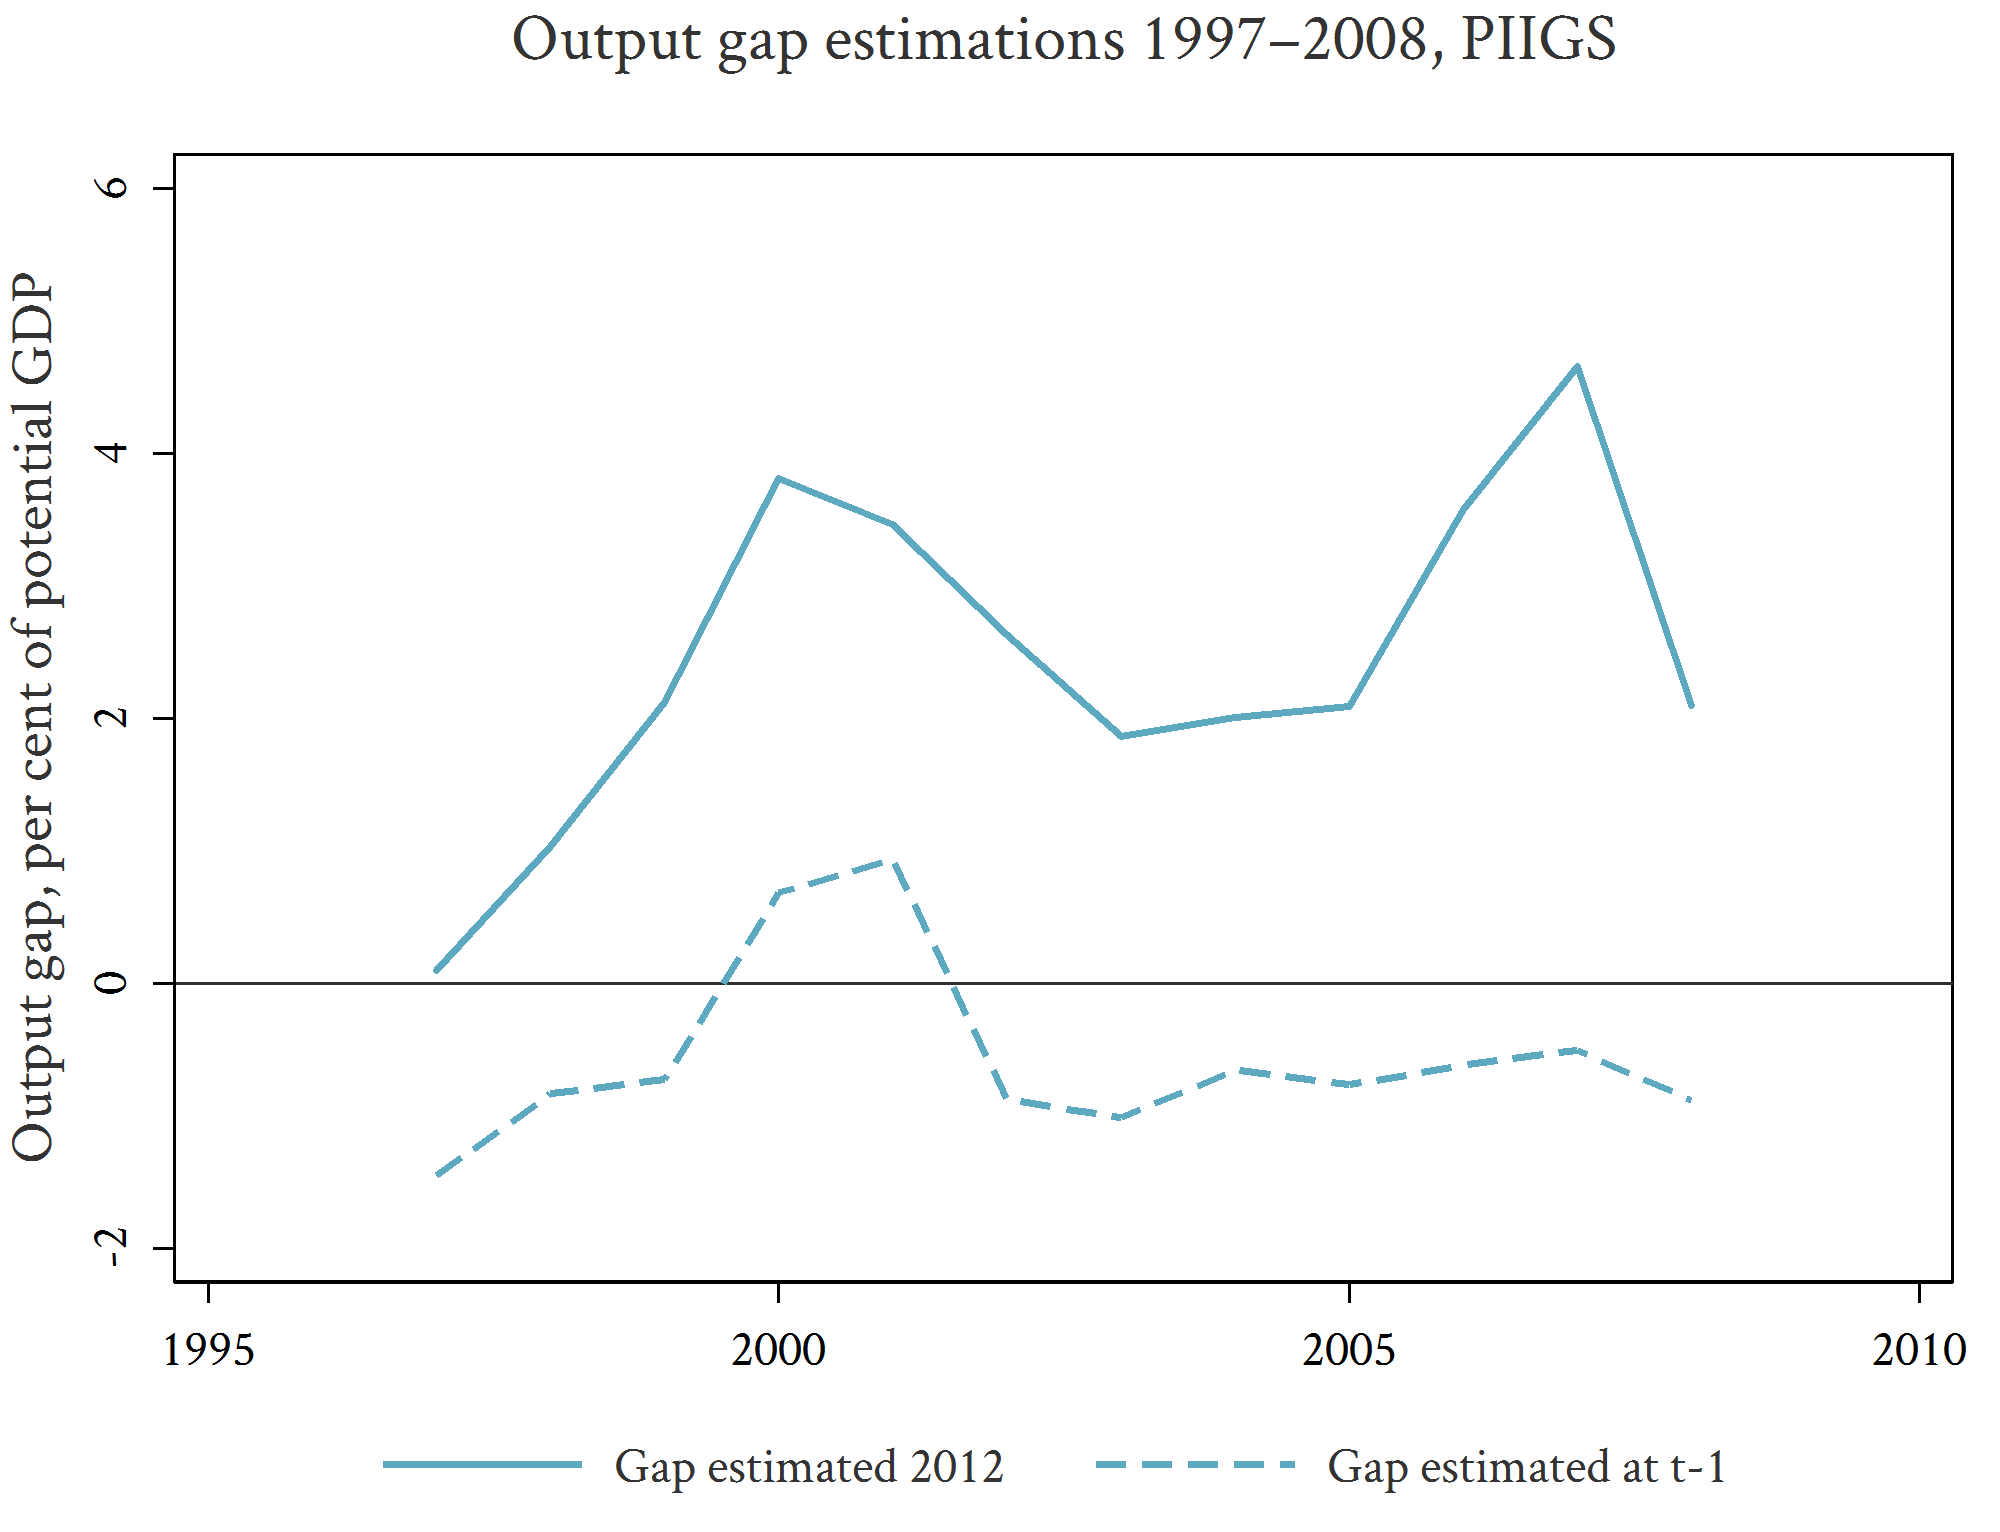 A graph of output gaps